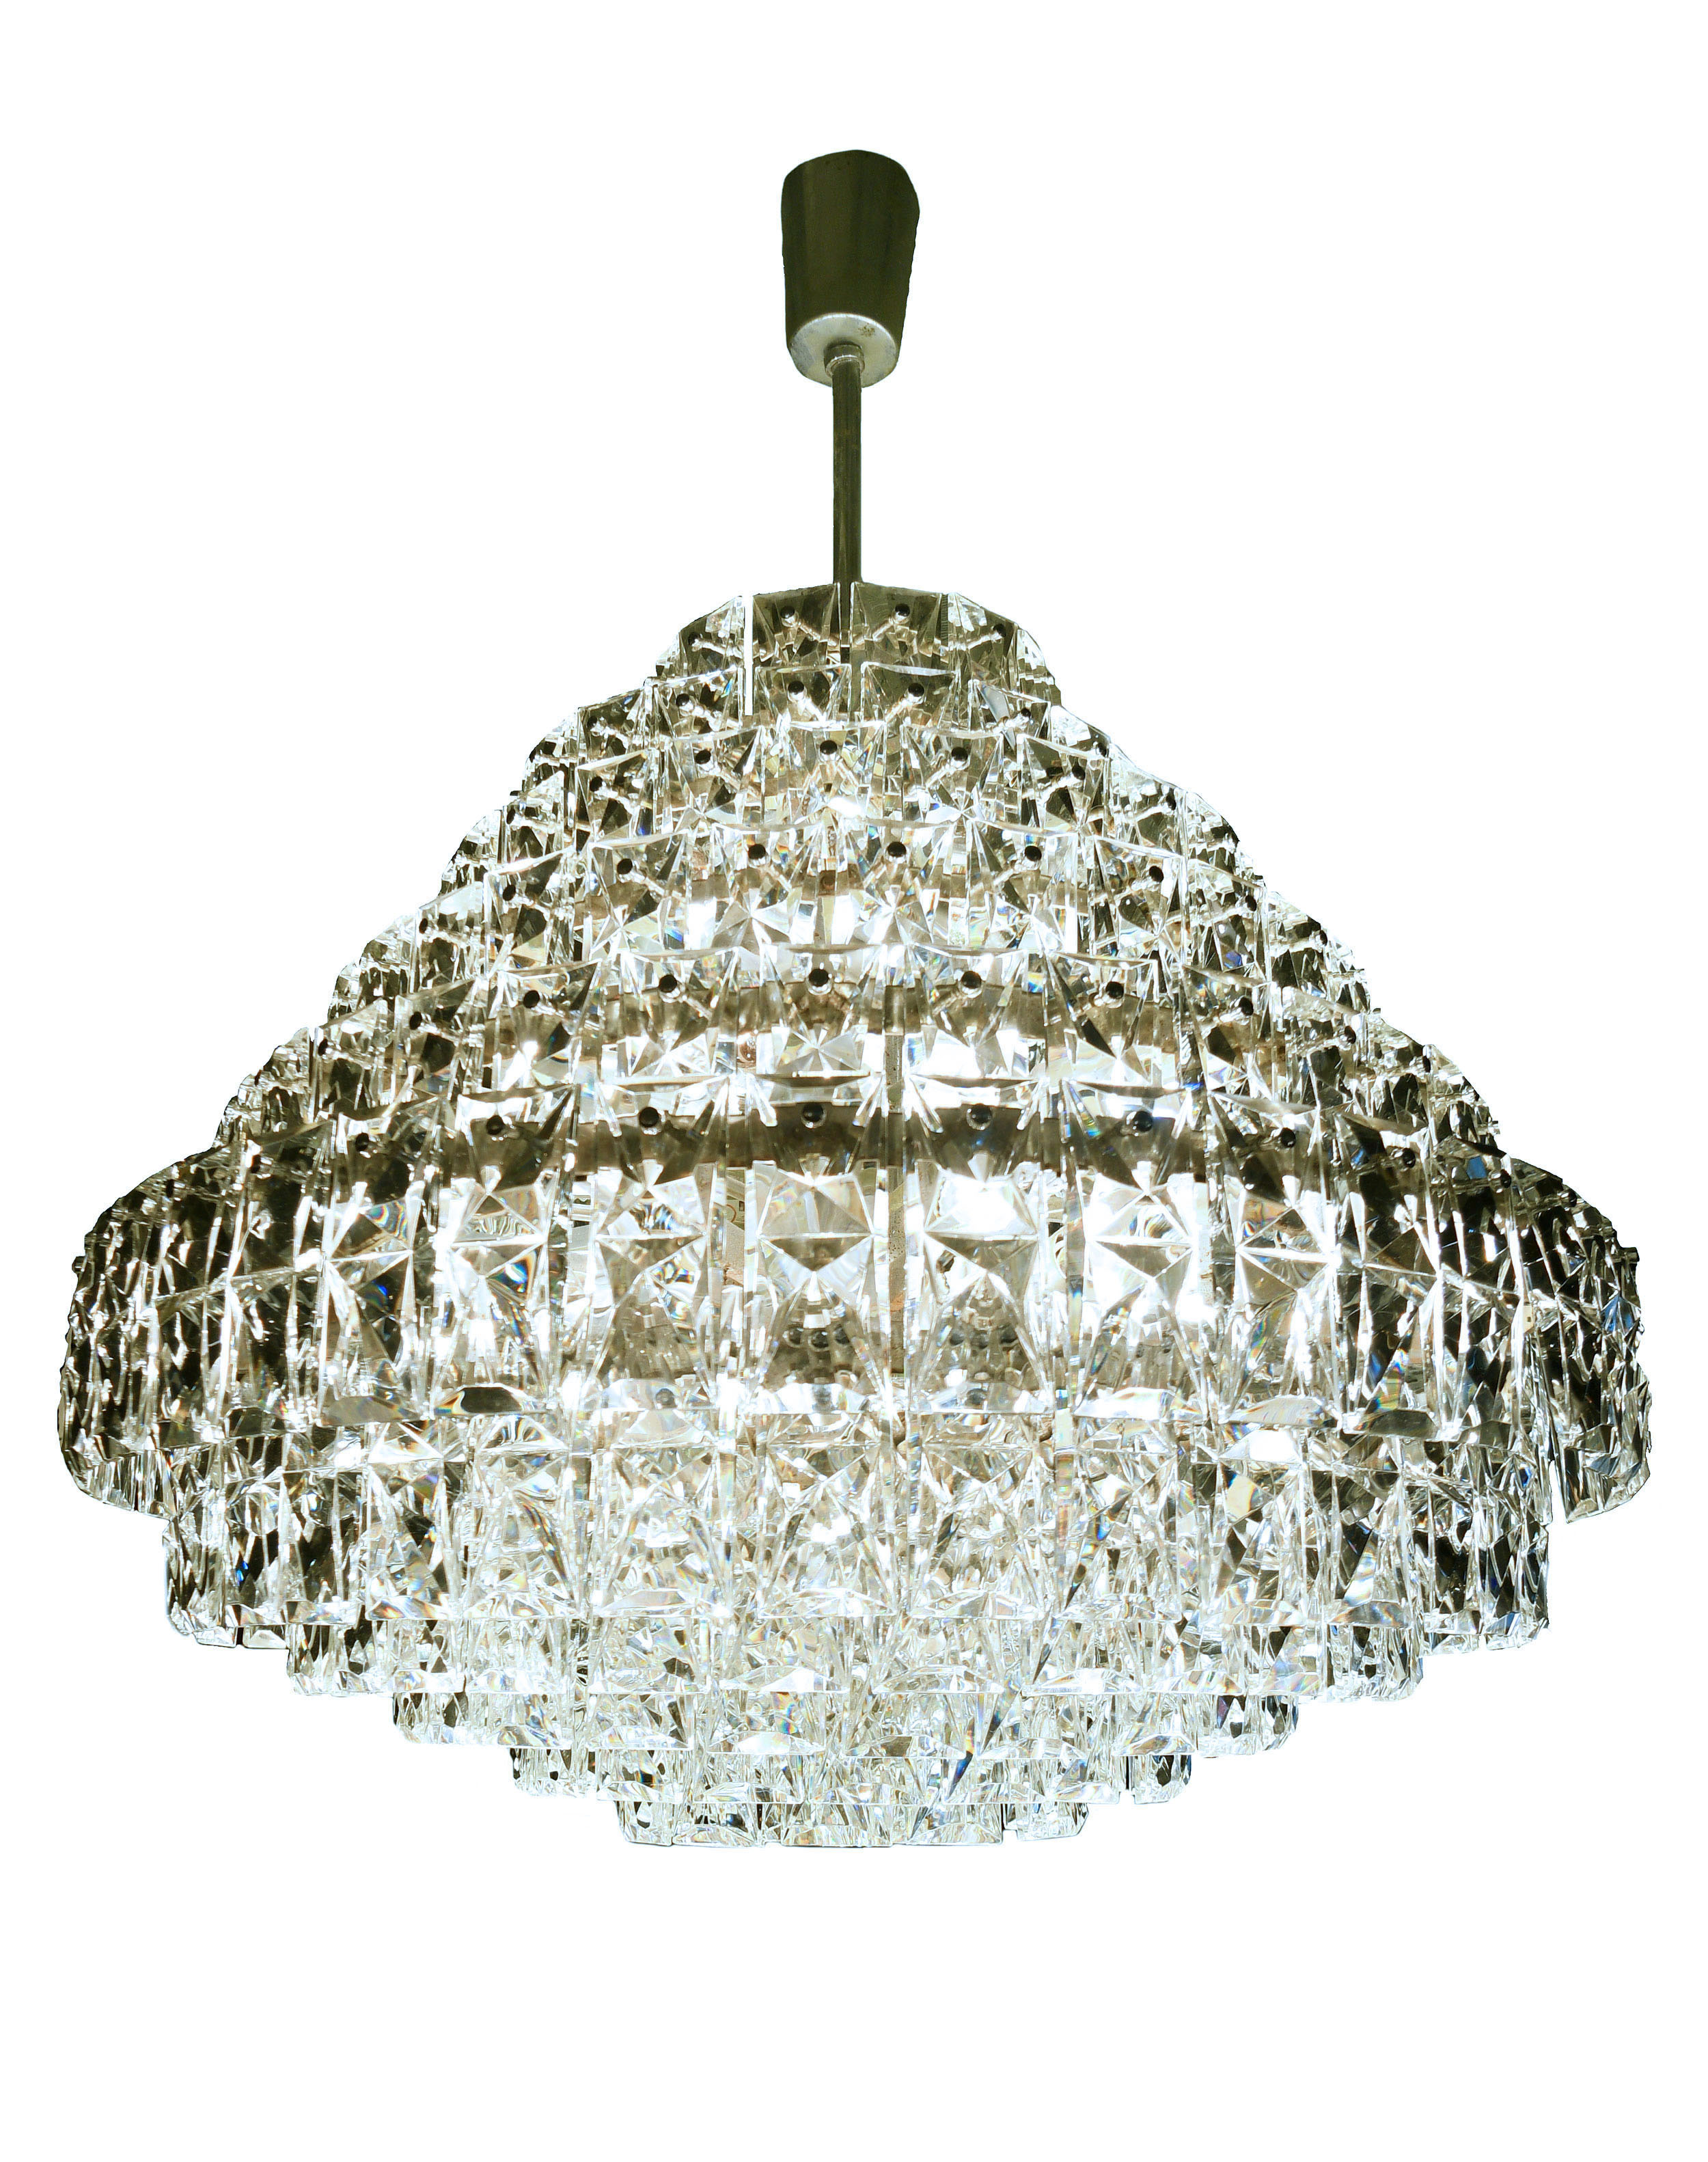 Large tiered crystal chandelier     Click here for more information